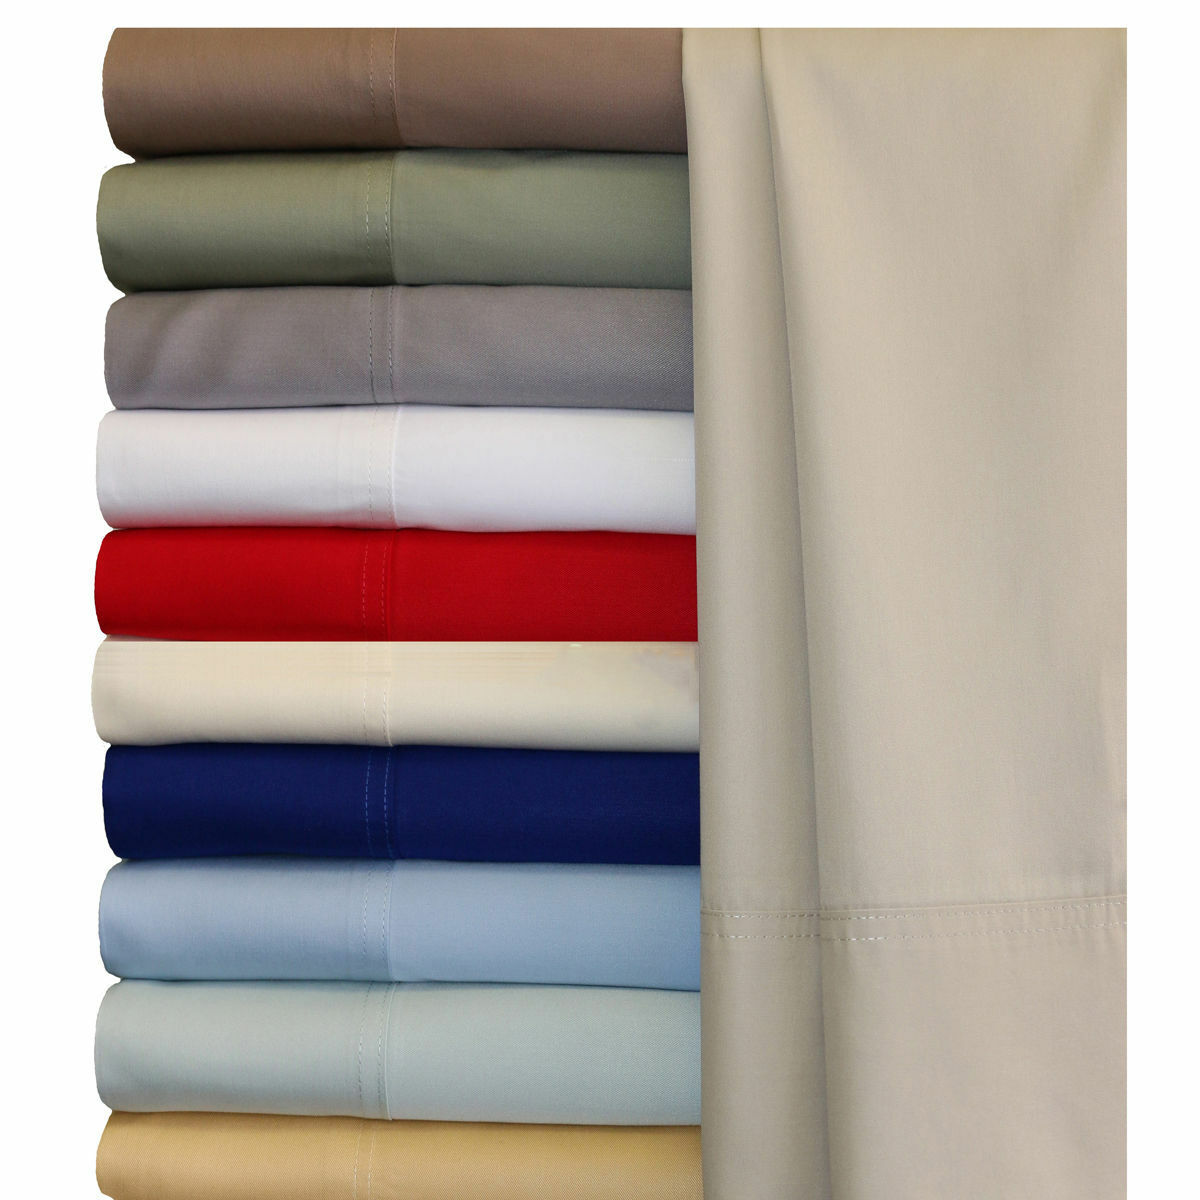 1000 Thread Count Egyptian Cotton Duvet Set with choice of Fitted Sheet US Sizes